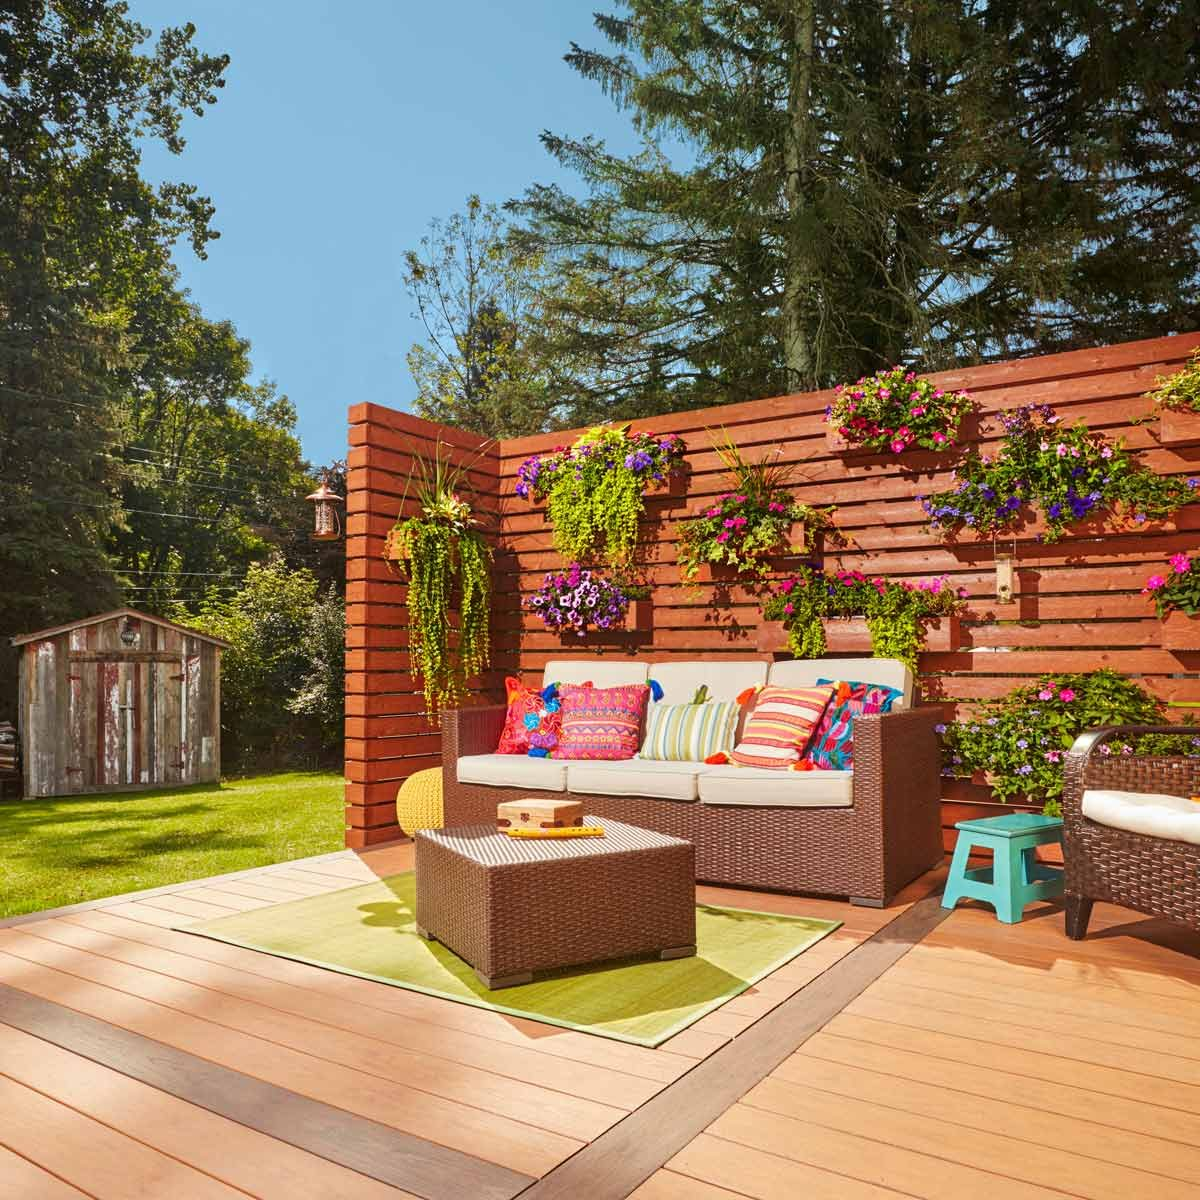 Vertical Garden Design With Gazebo Installation Living Wall Materials List